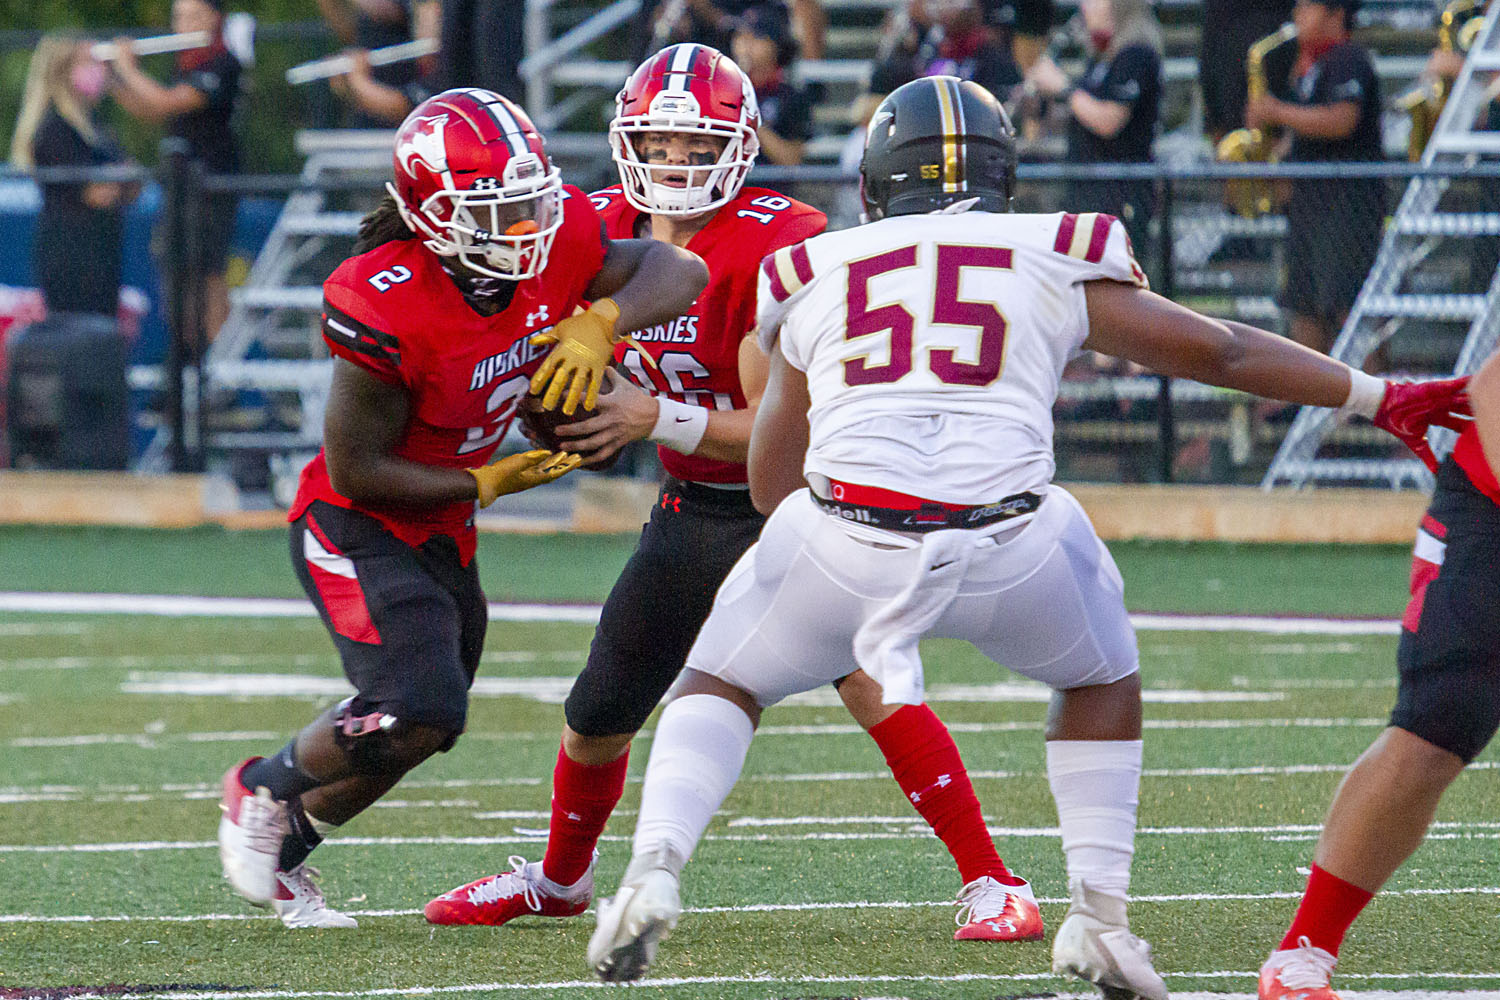 Goodwin leads Hewitt-Trussville past Pinson Valley, 44-19